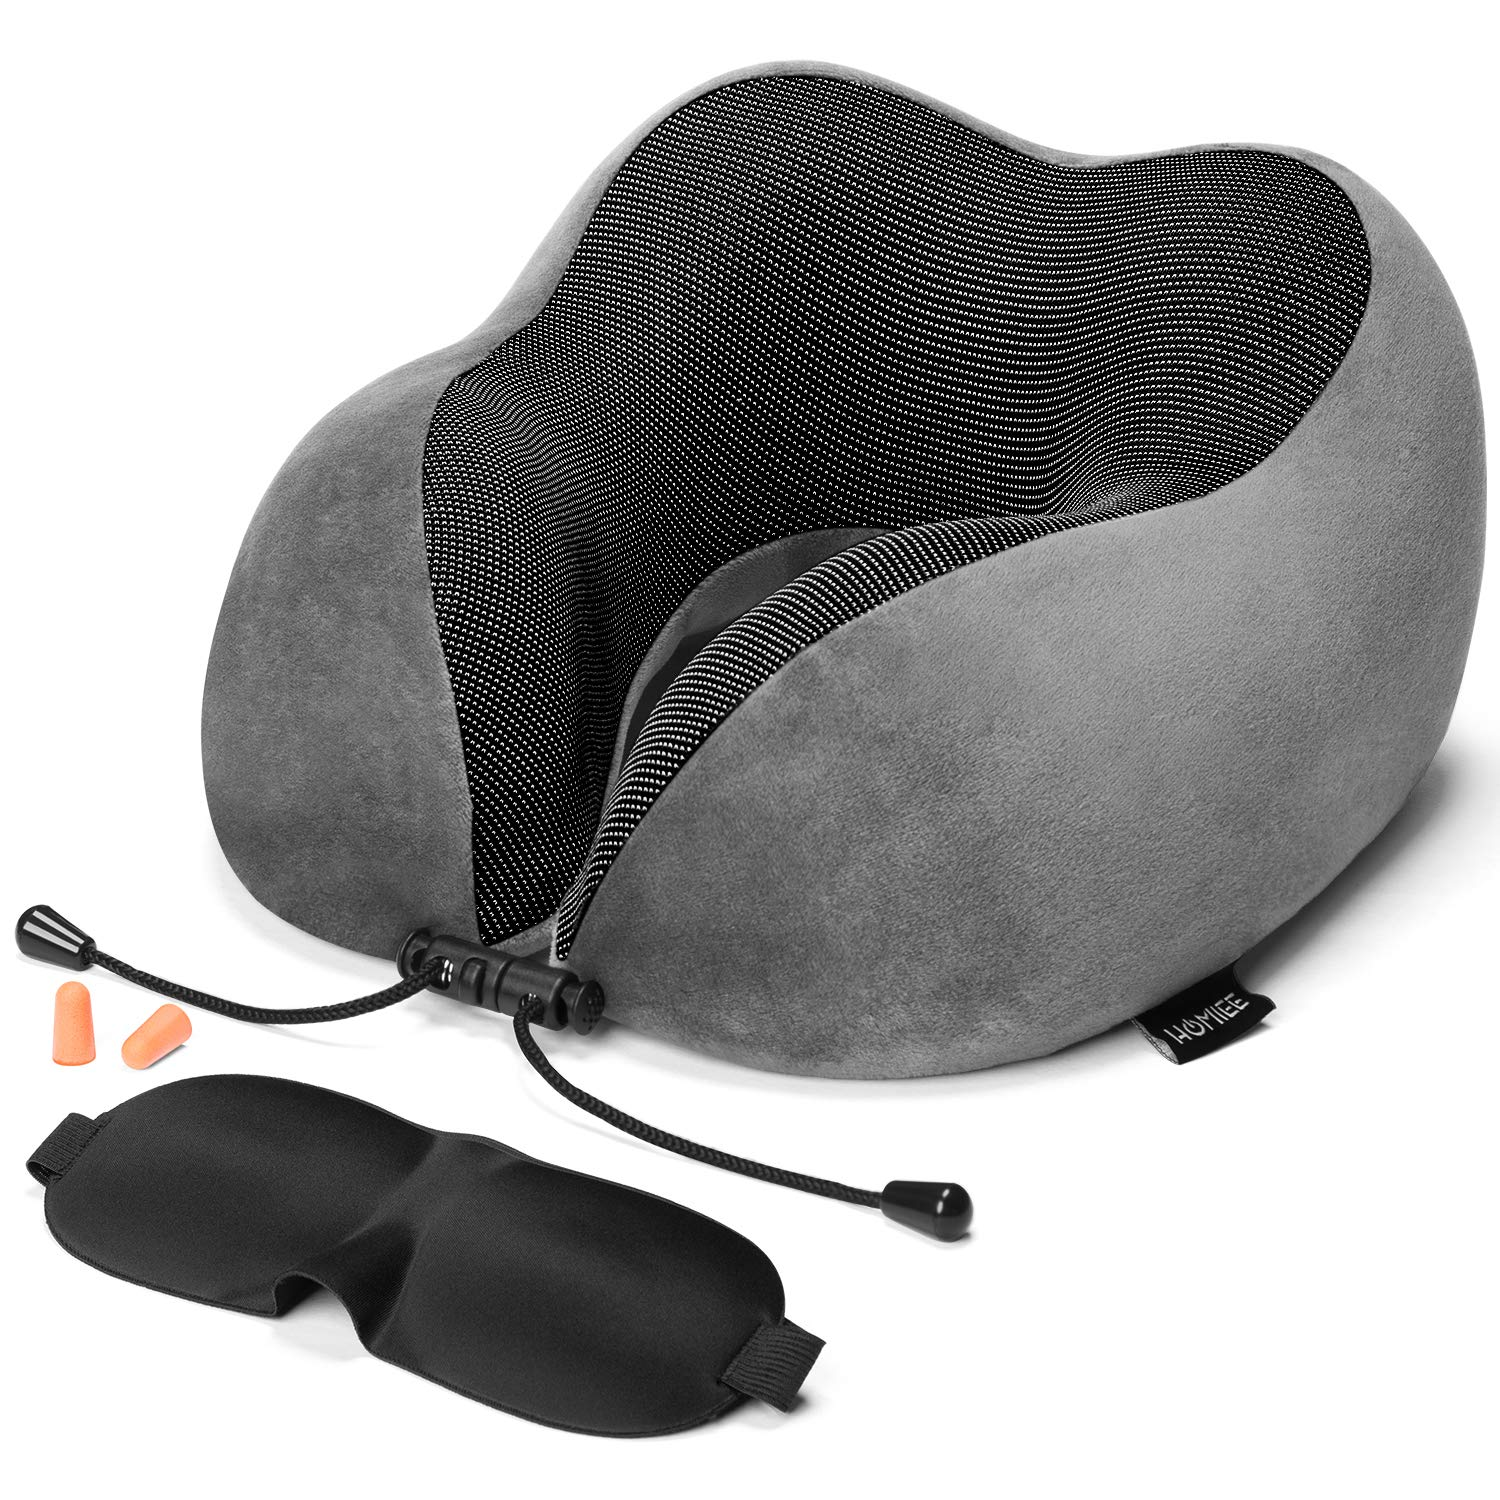 HOMIEE Travel Pillow, Memory Foam Neck Pillow, 360° Head & Neck Support Travel Cushion Essentials, Including Sleep Mask, Earplugs, Ideal for Sleeping, Travelling, Airplanes and Flights TP1001BK